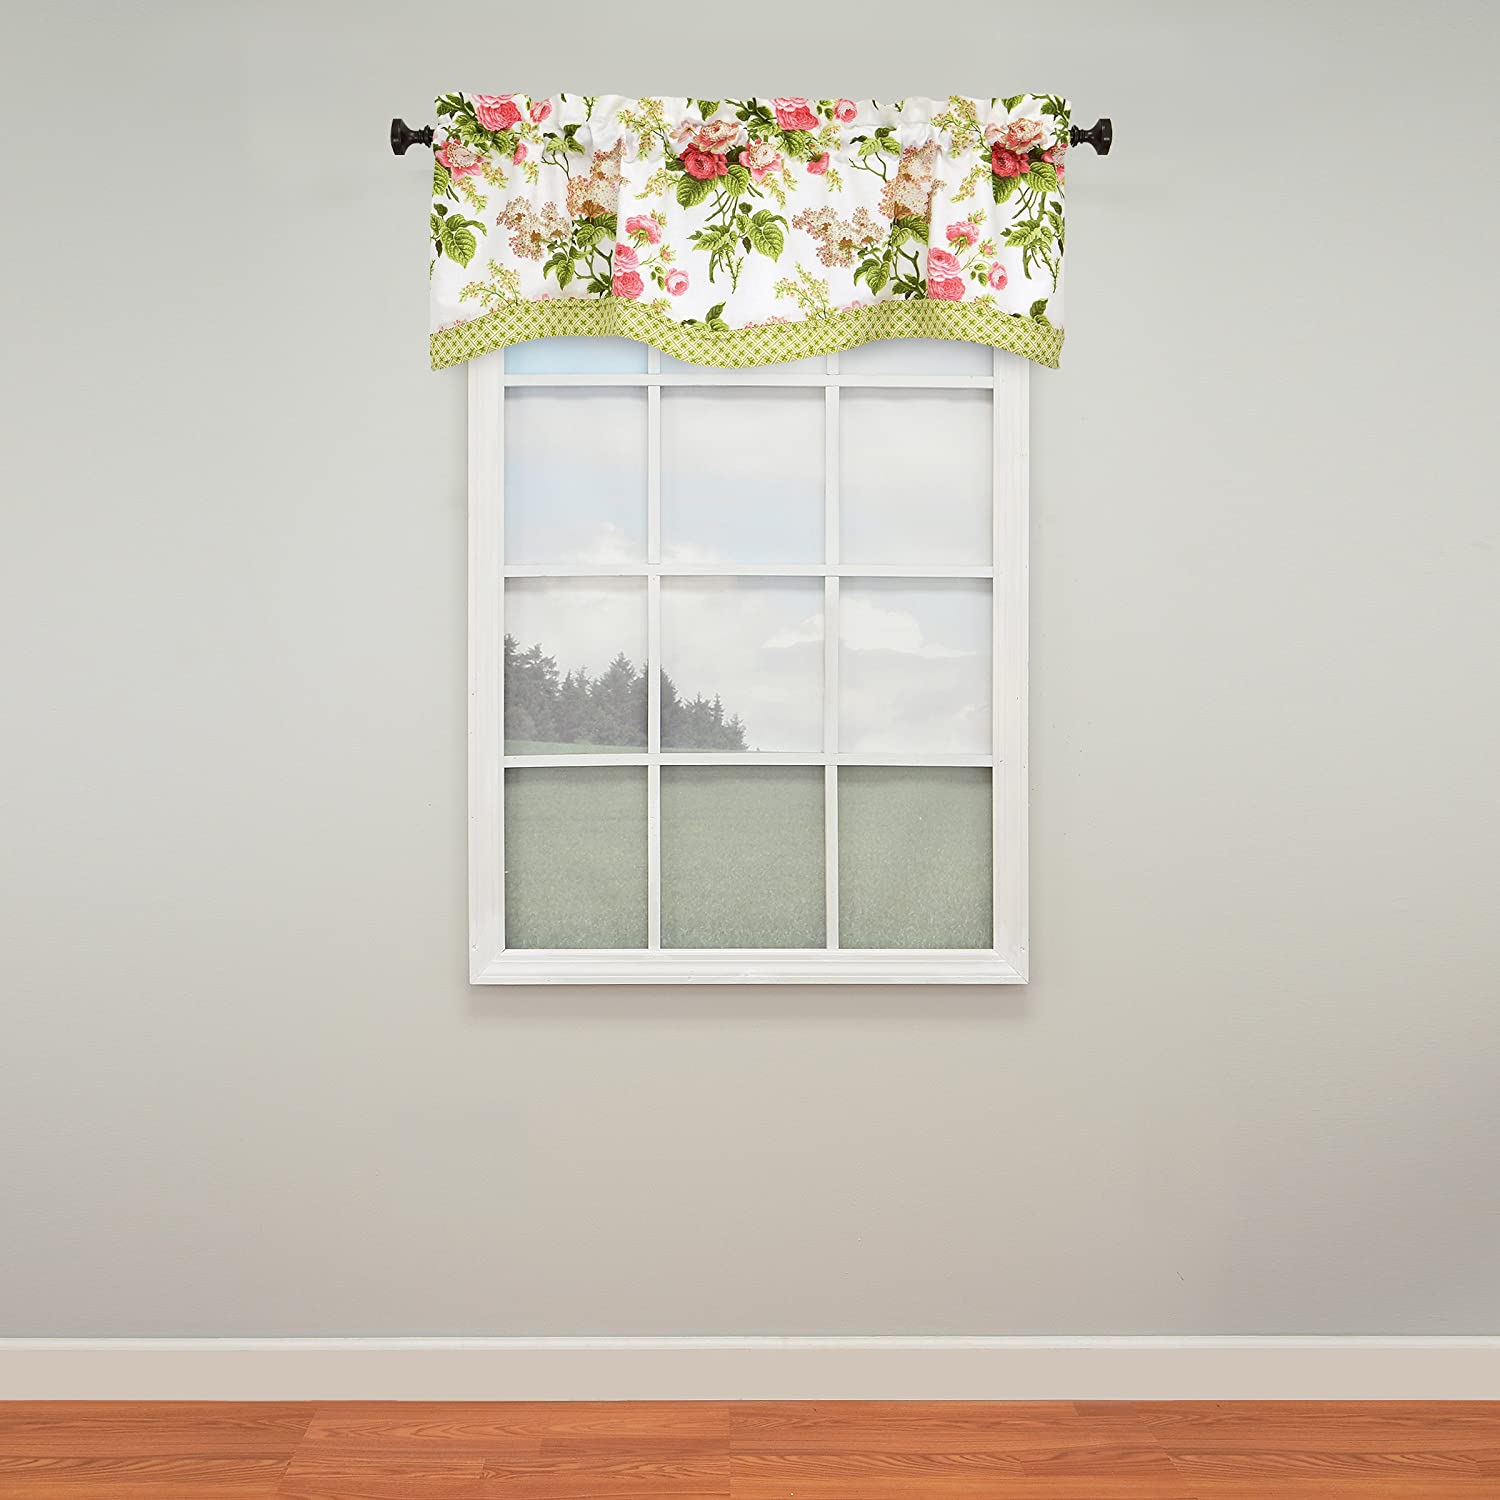 WAVERLY Emma's Garden Window Valance, 52x18, Blossom